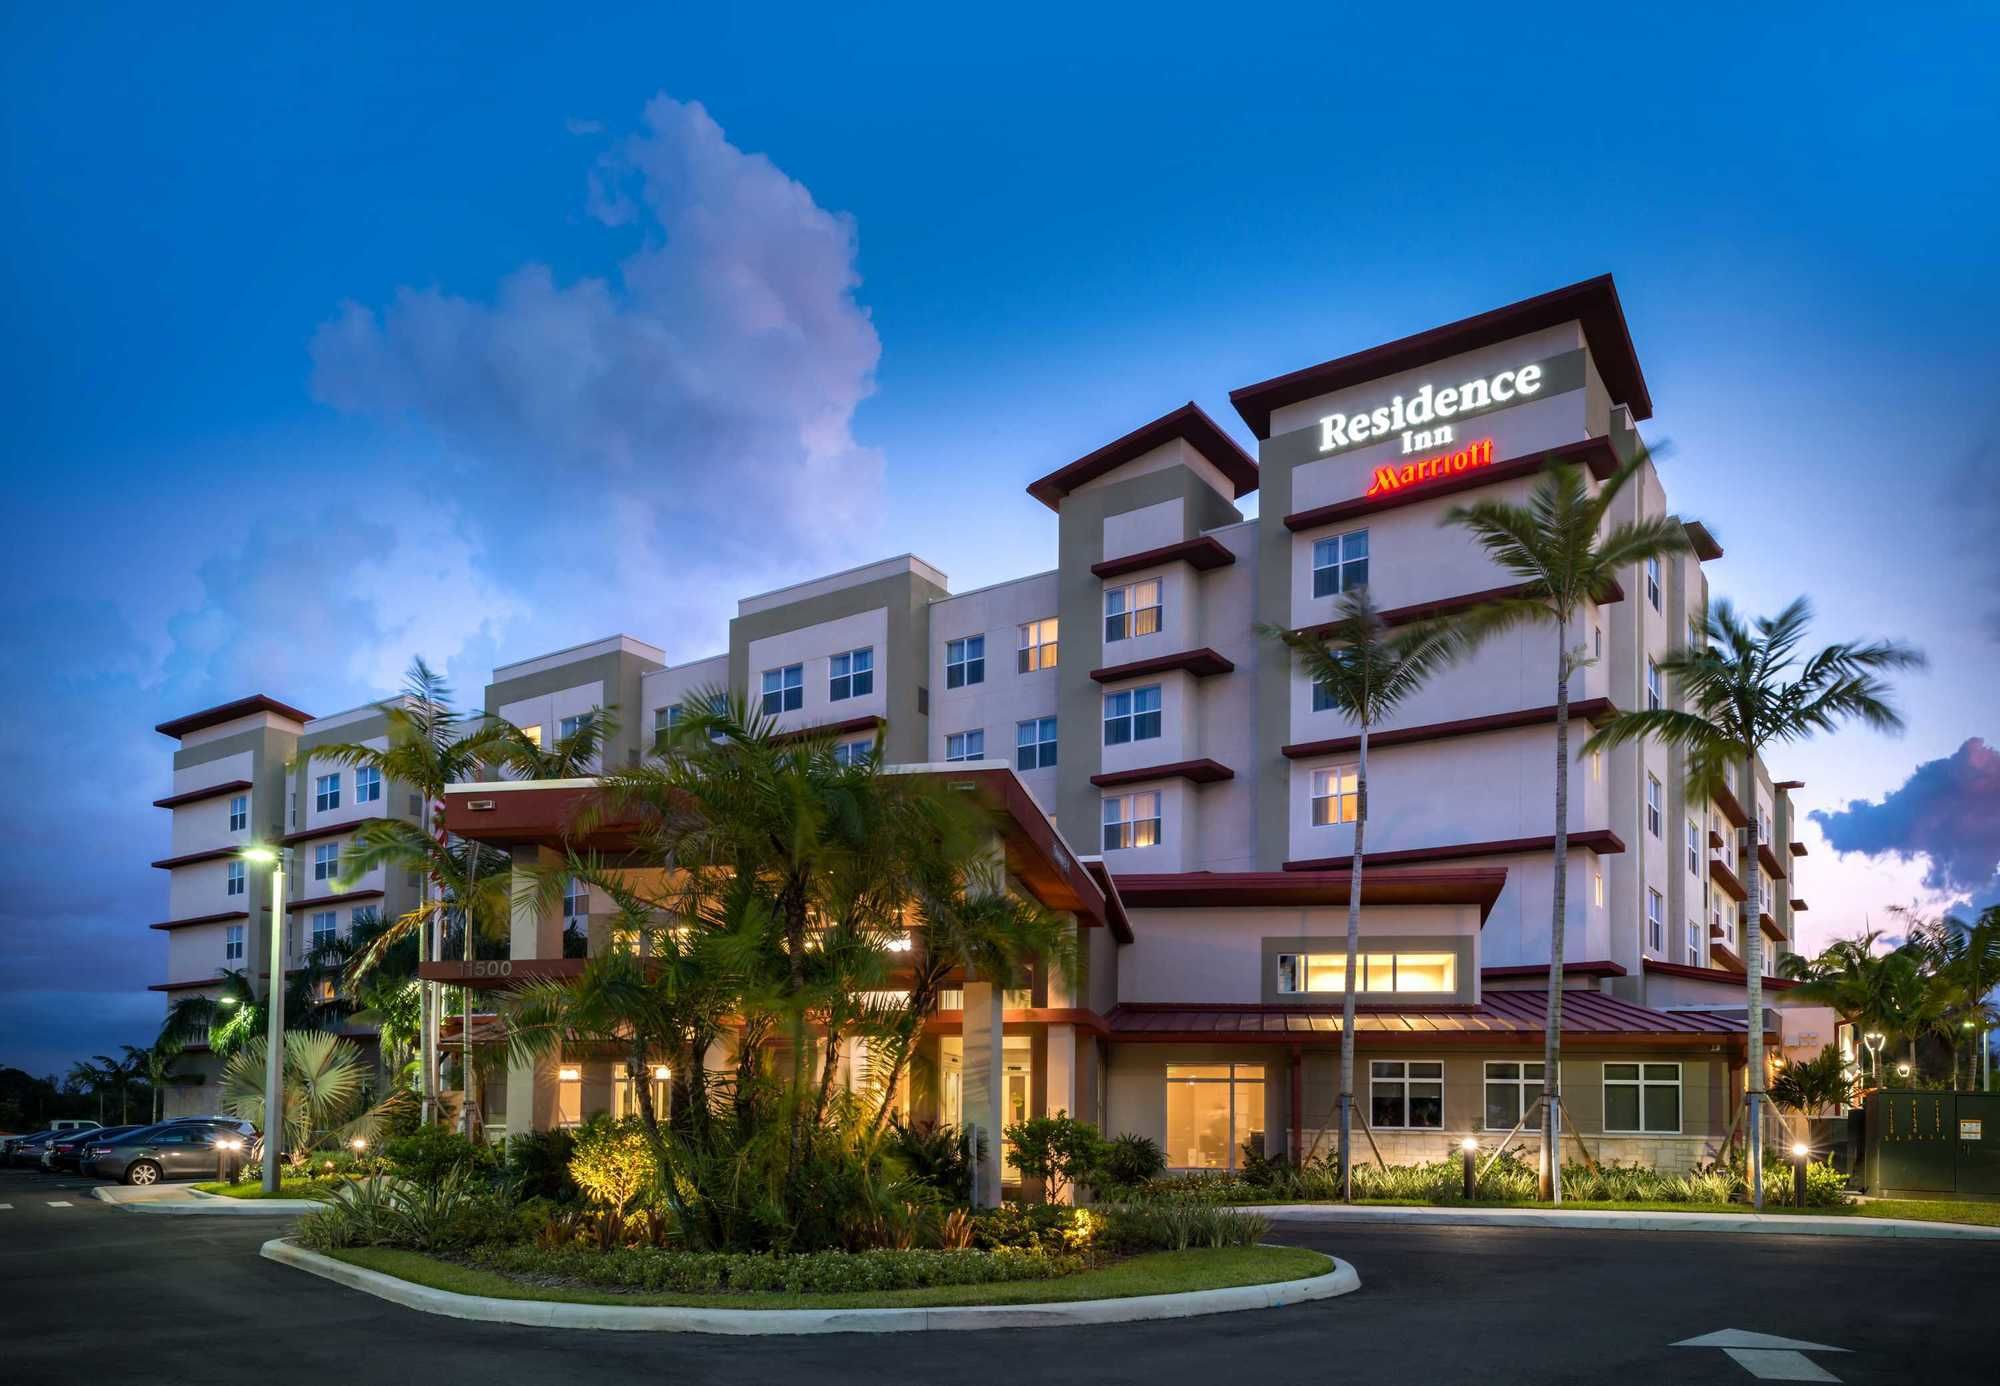 Residence Inn by Marriott Miami West FL Turnpike